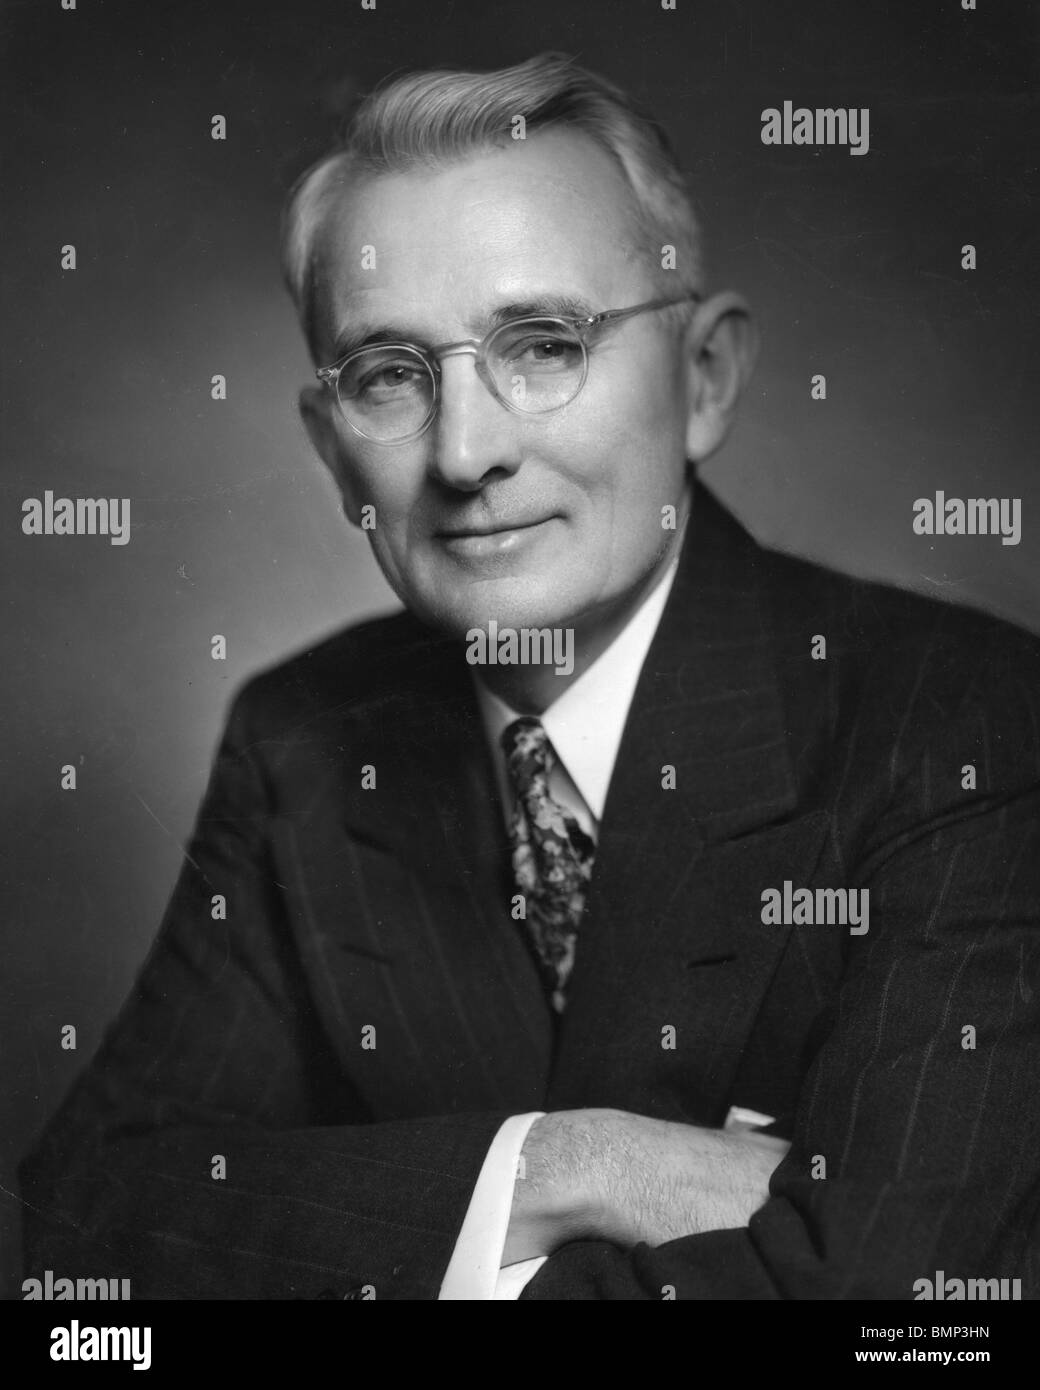 DALE CARNEGIE - American writer and lecturer (1888-1955) author of How To Win Friends and Influence People - Stock Image